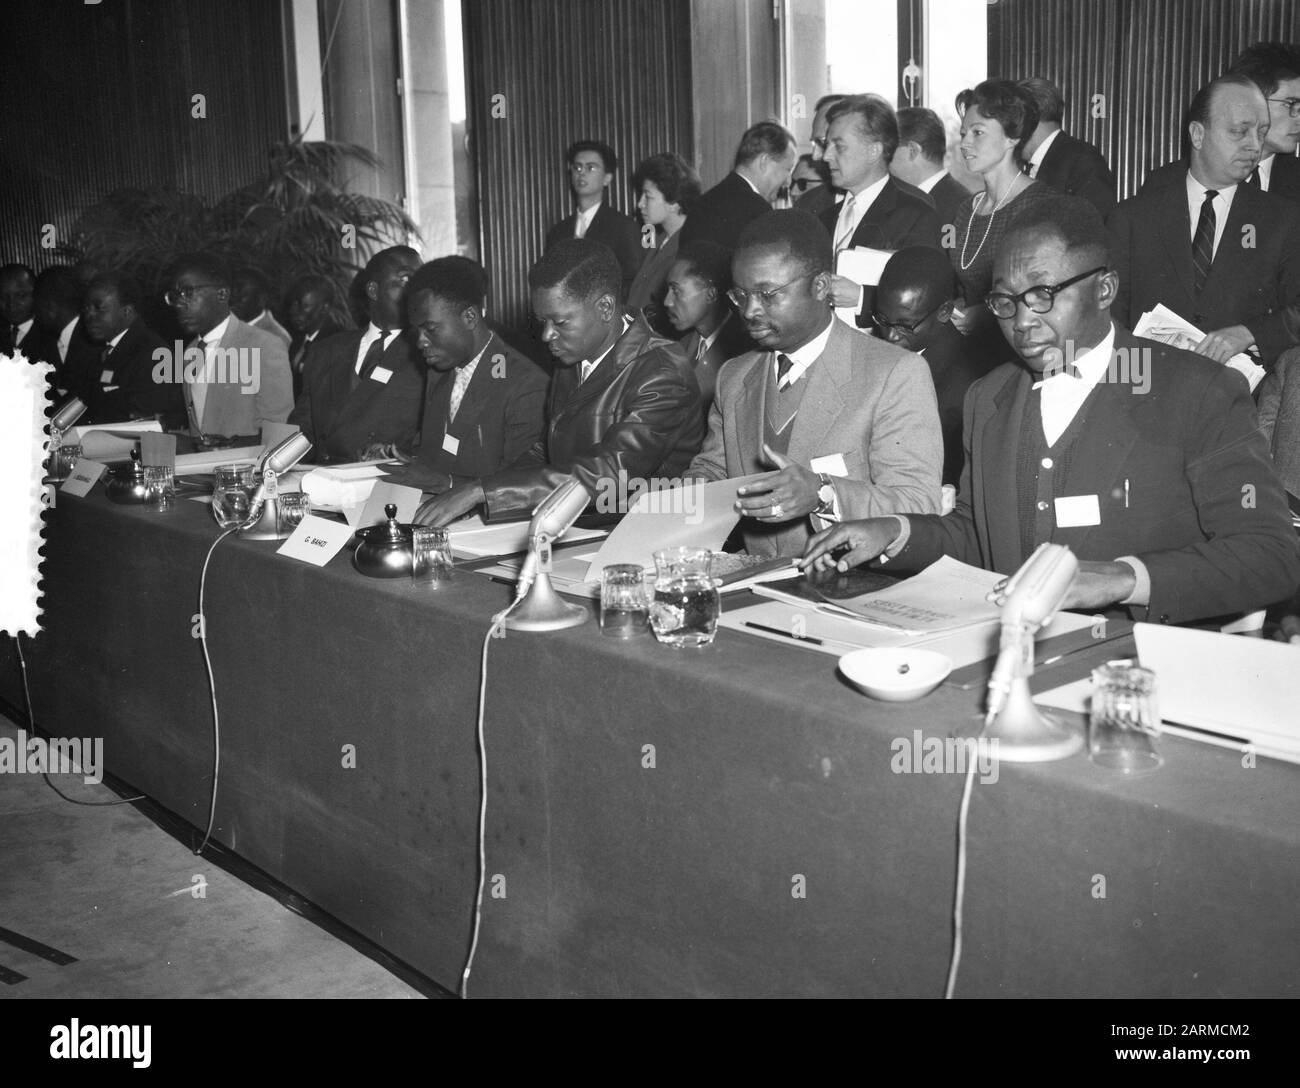 Picture of: Round Table Conference In Brussels Congo Date 20 January 1960 Location Brussels Institution Name Round Table Conference Stock Photo Alamy